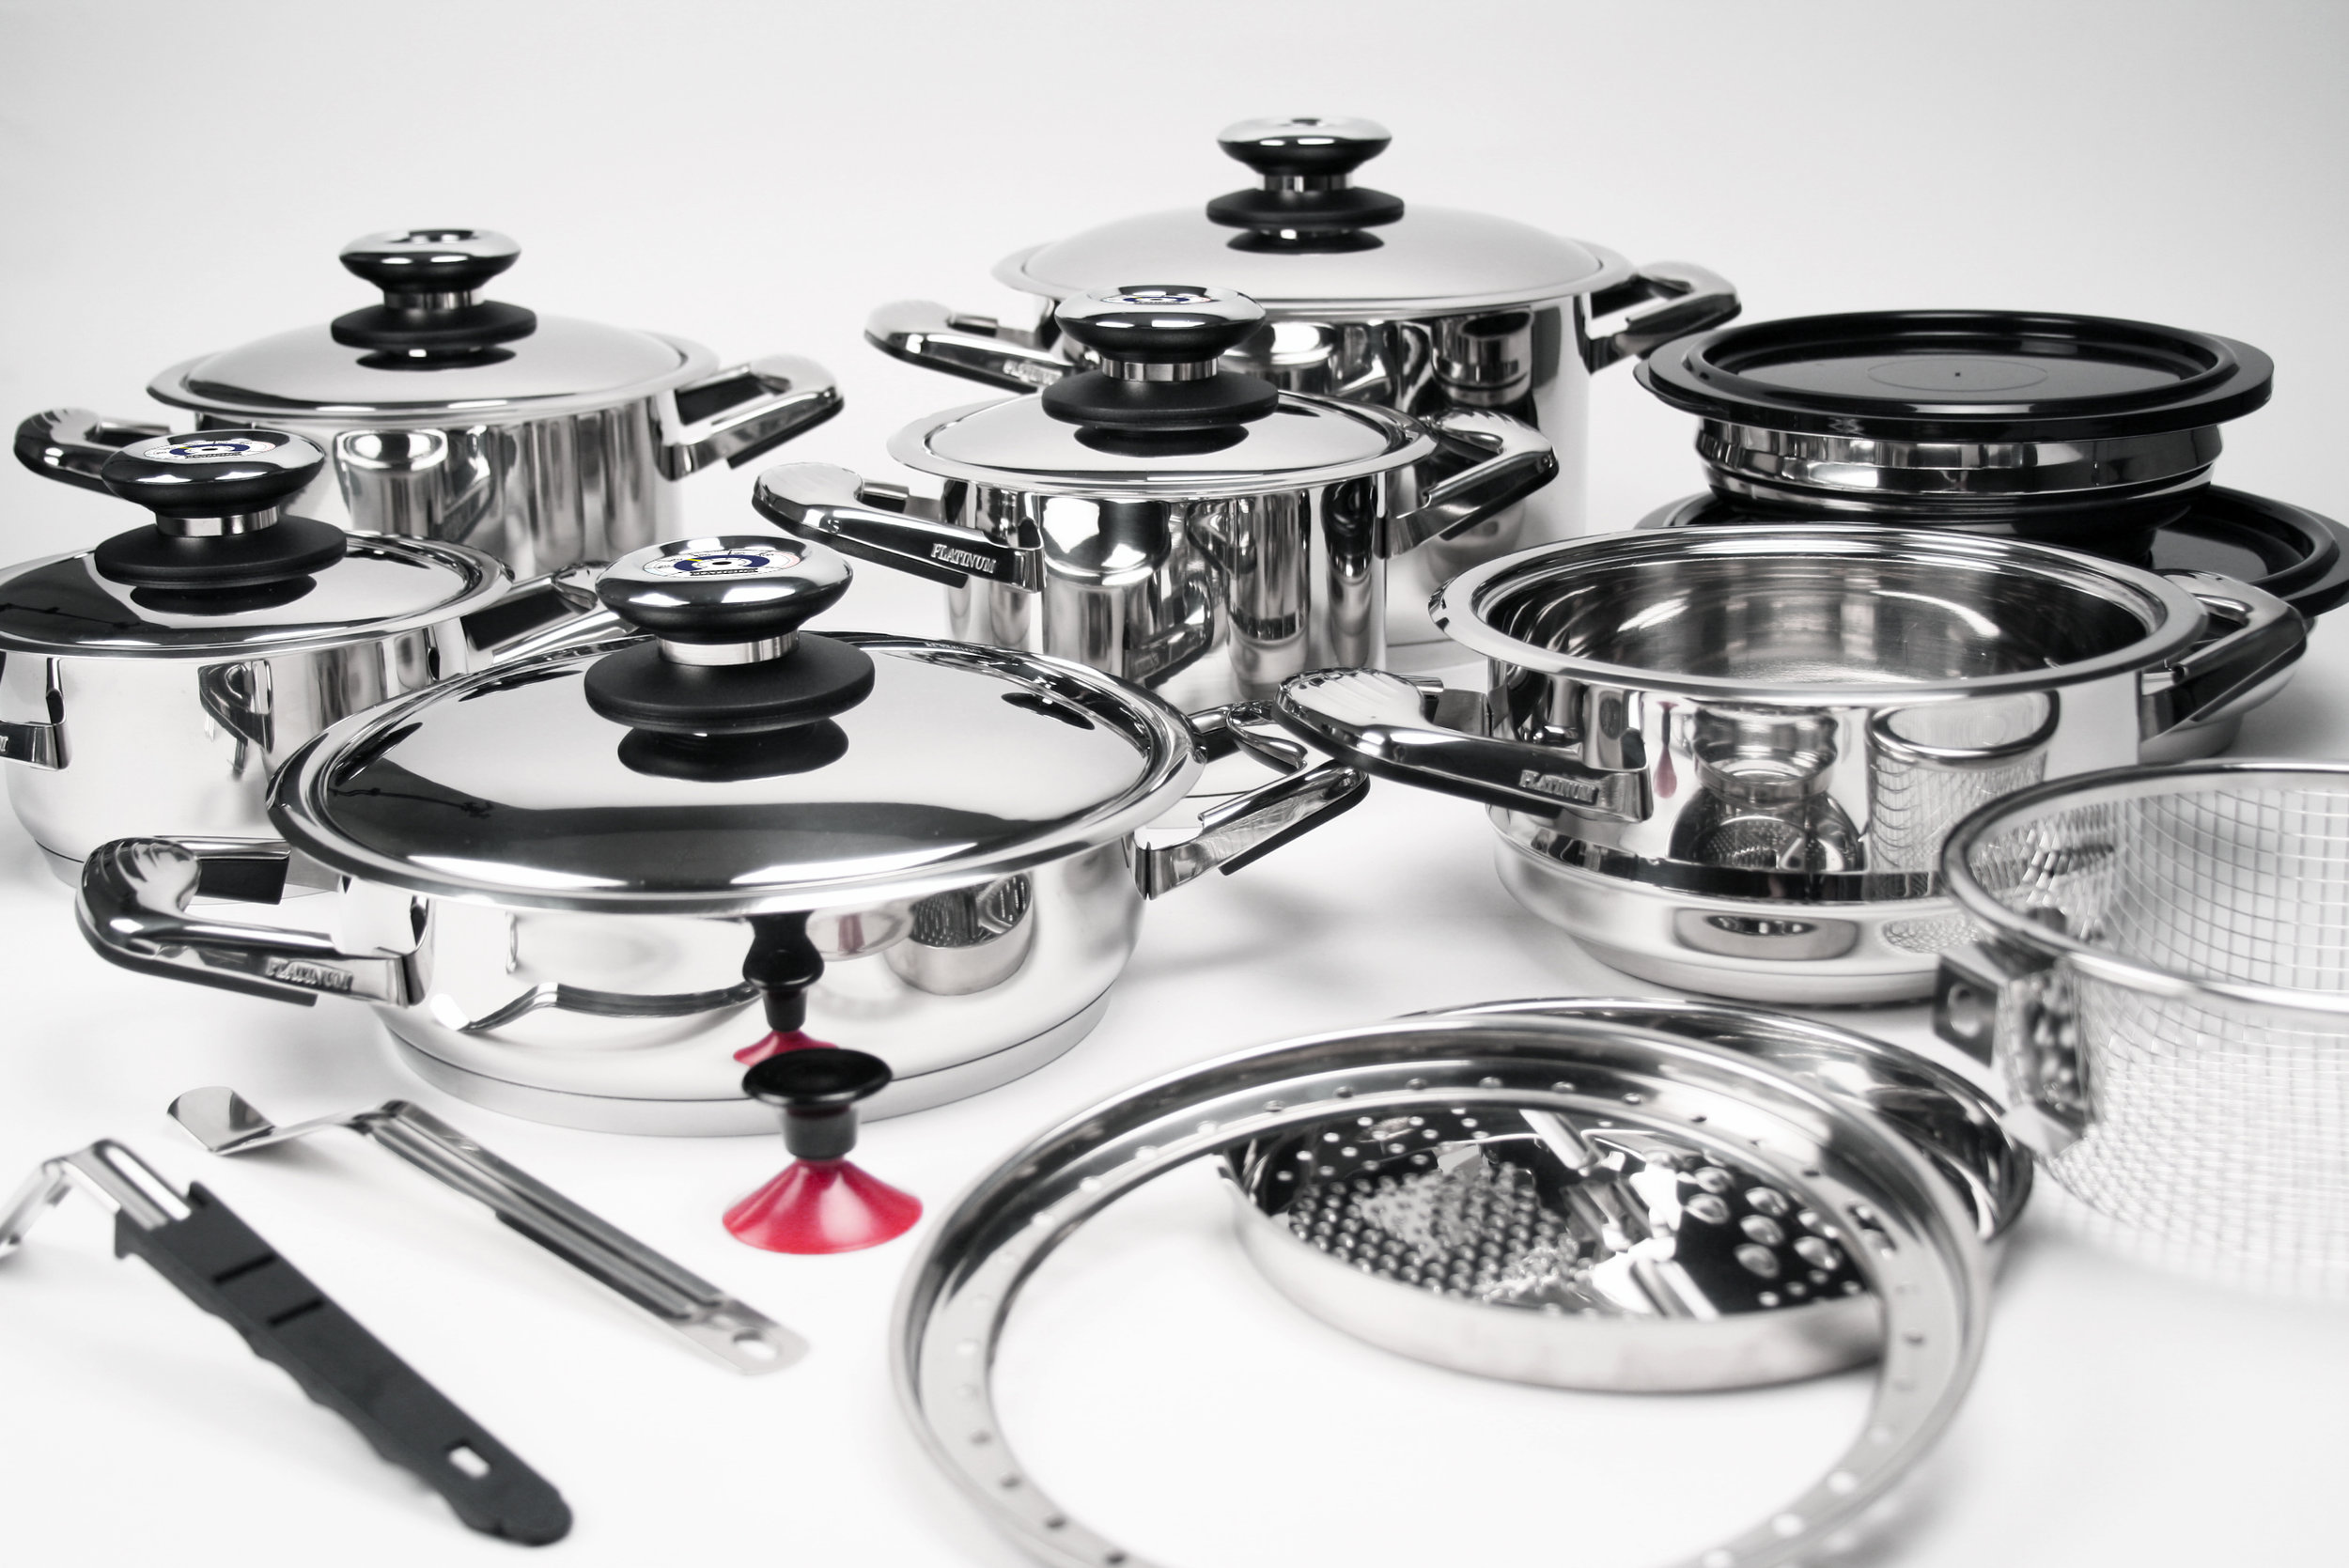 Life-changing waterless cooking - Professional Platinum Cookware will not only change the way you cook, but it will change your life! Waterless cooking in a sealed environment creates a wide range of meals while keeping almost all of the nutrients that are lost through boiling or steam. Your meals won't just taste better, they'll be healthier also! Our Story